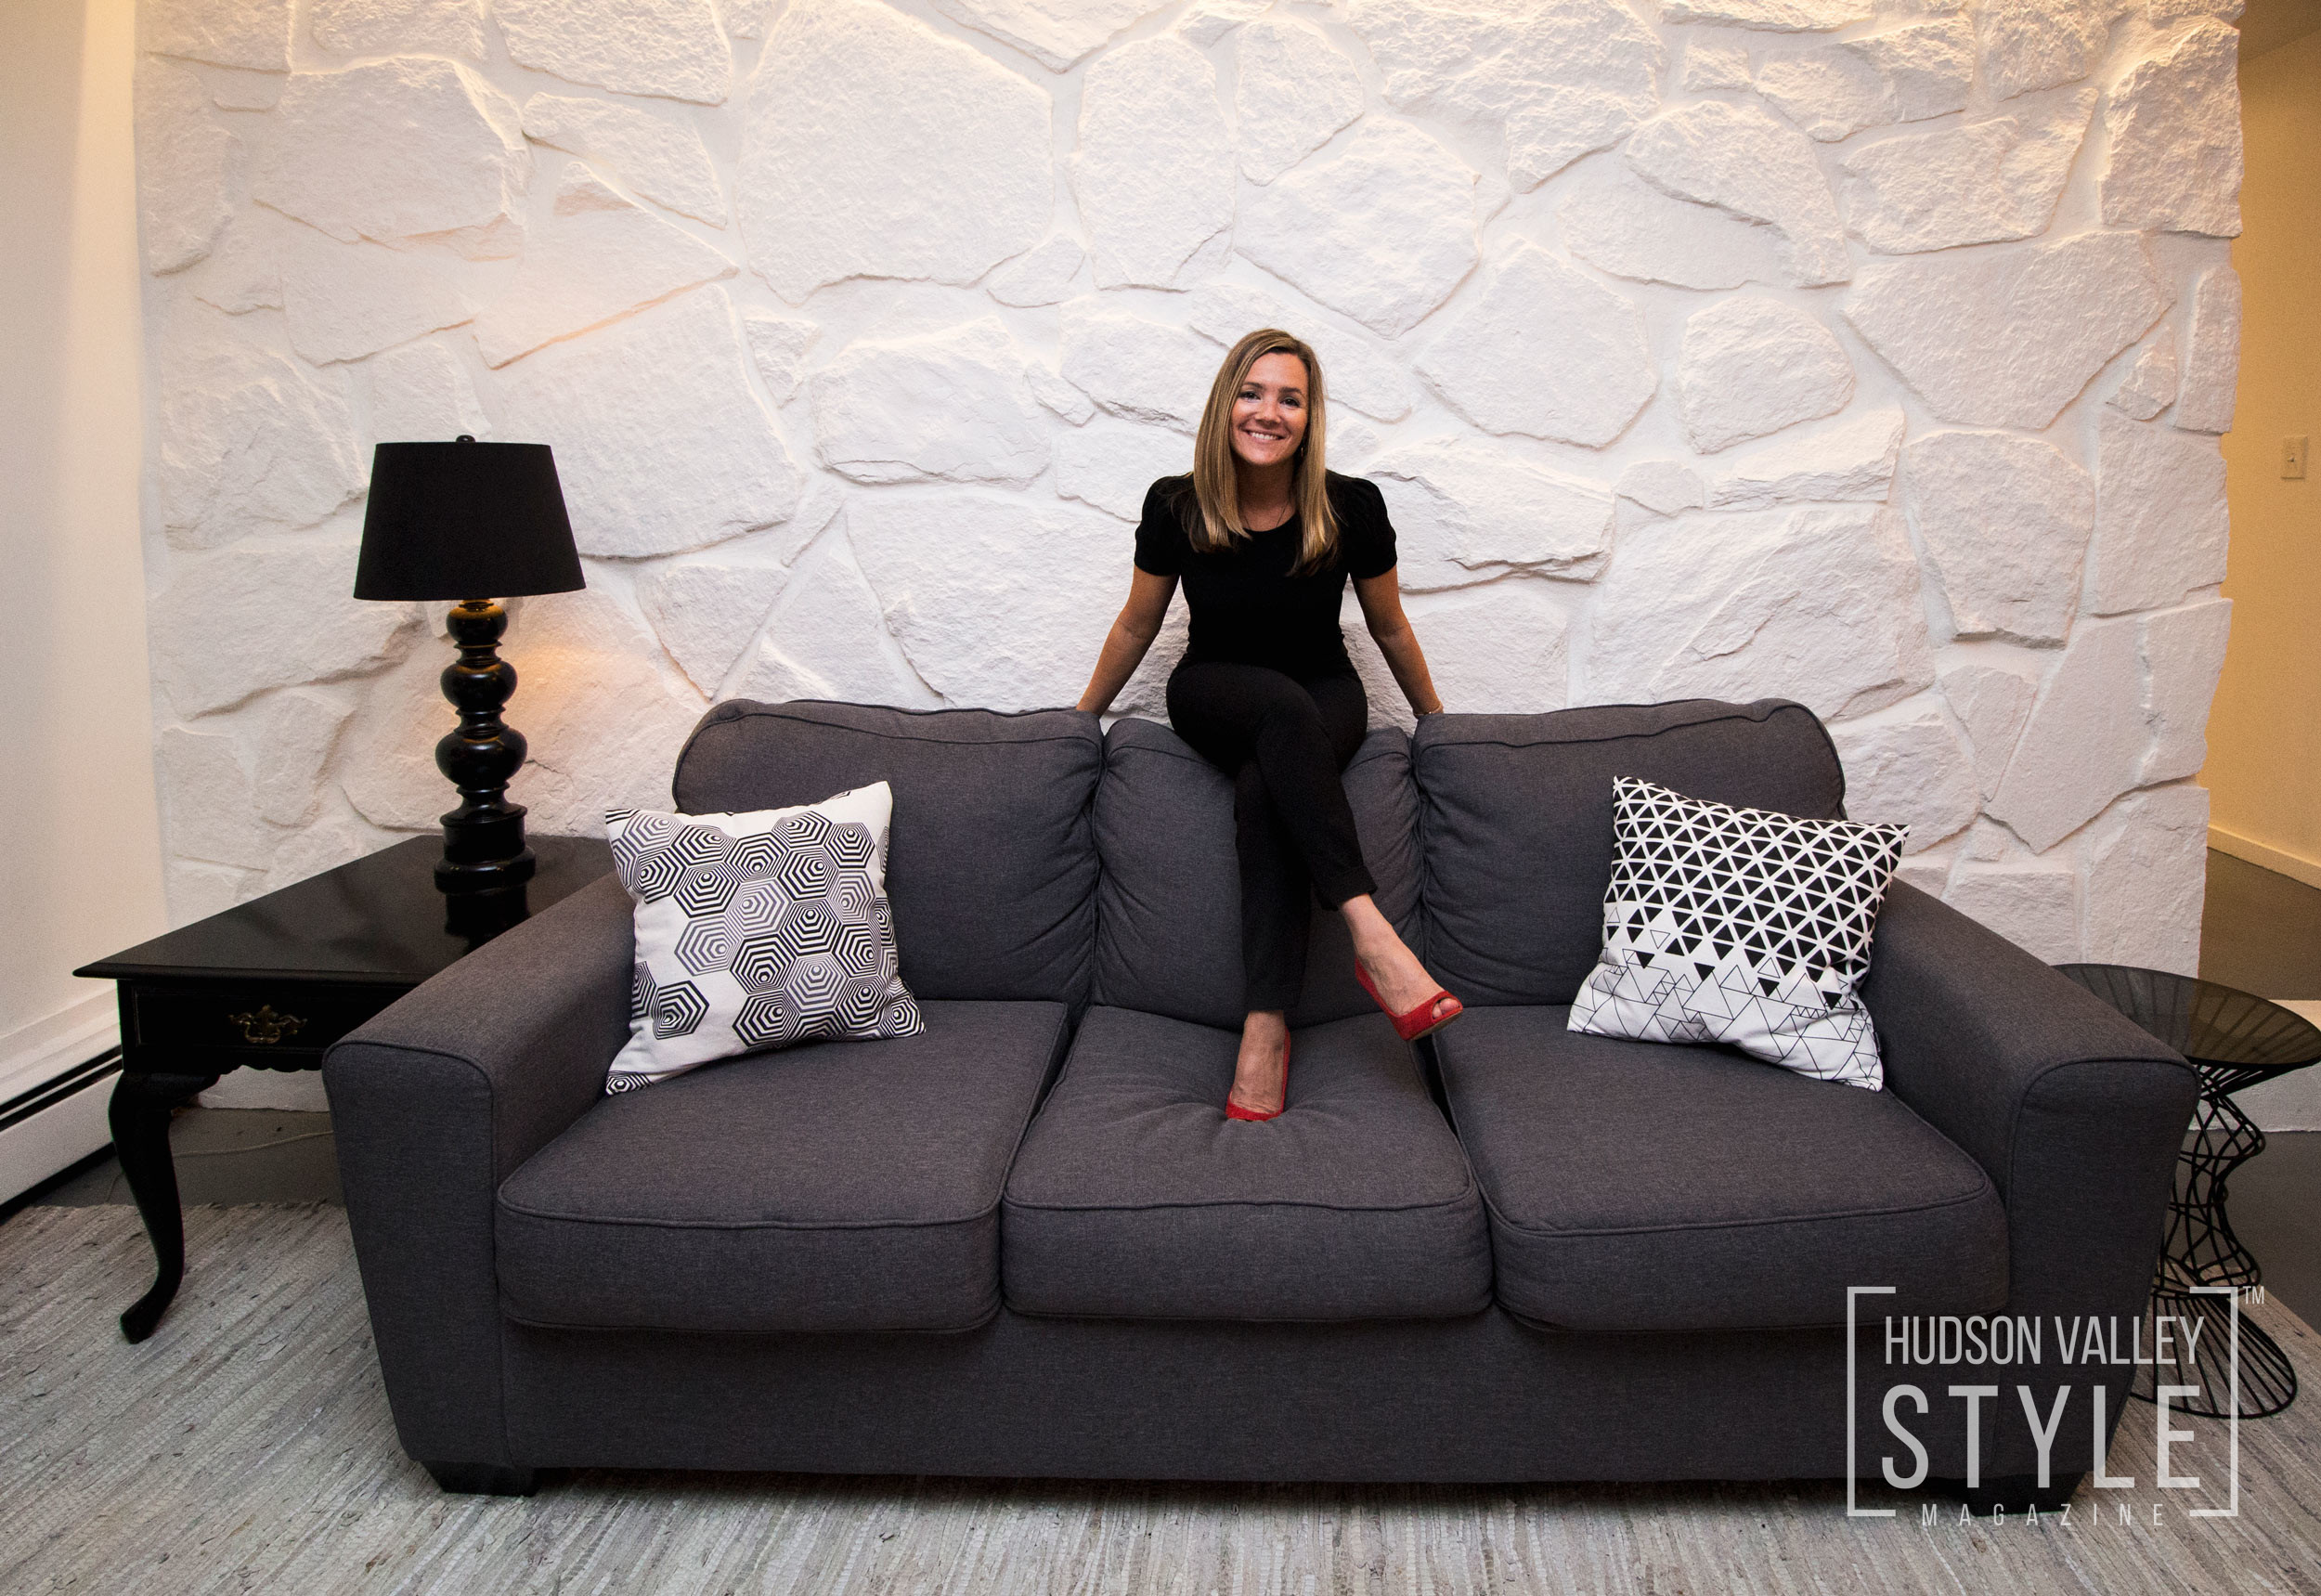 Fall 2018 Cover Story: Lauren Racanelli - The New Generation of Homebuyers